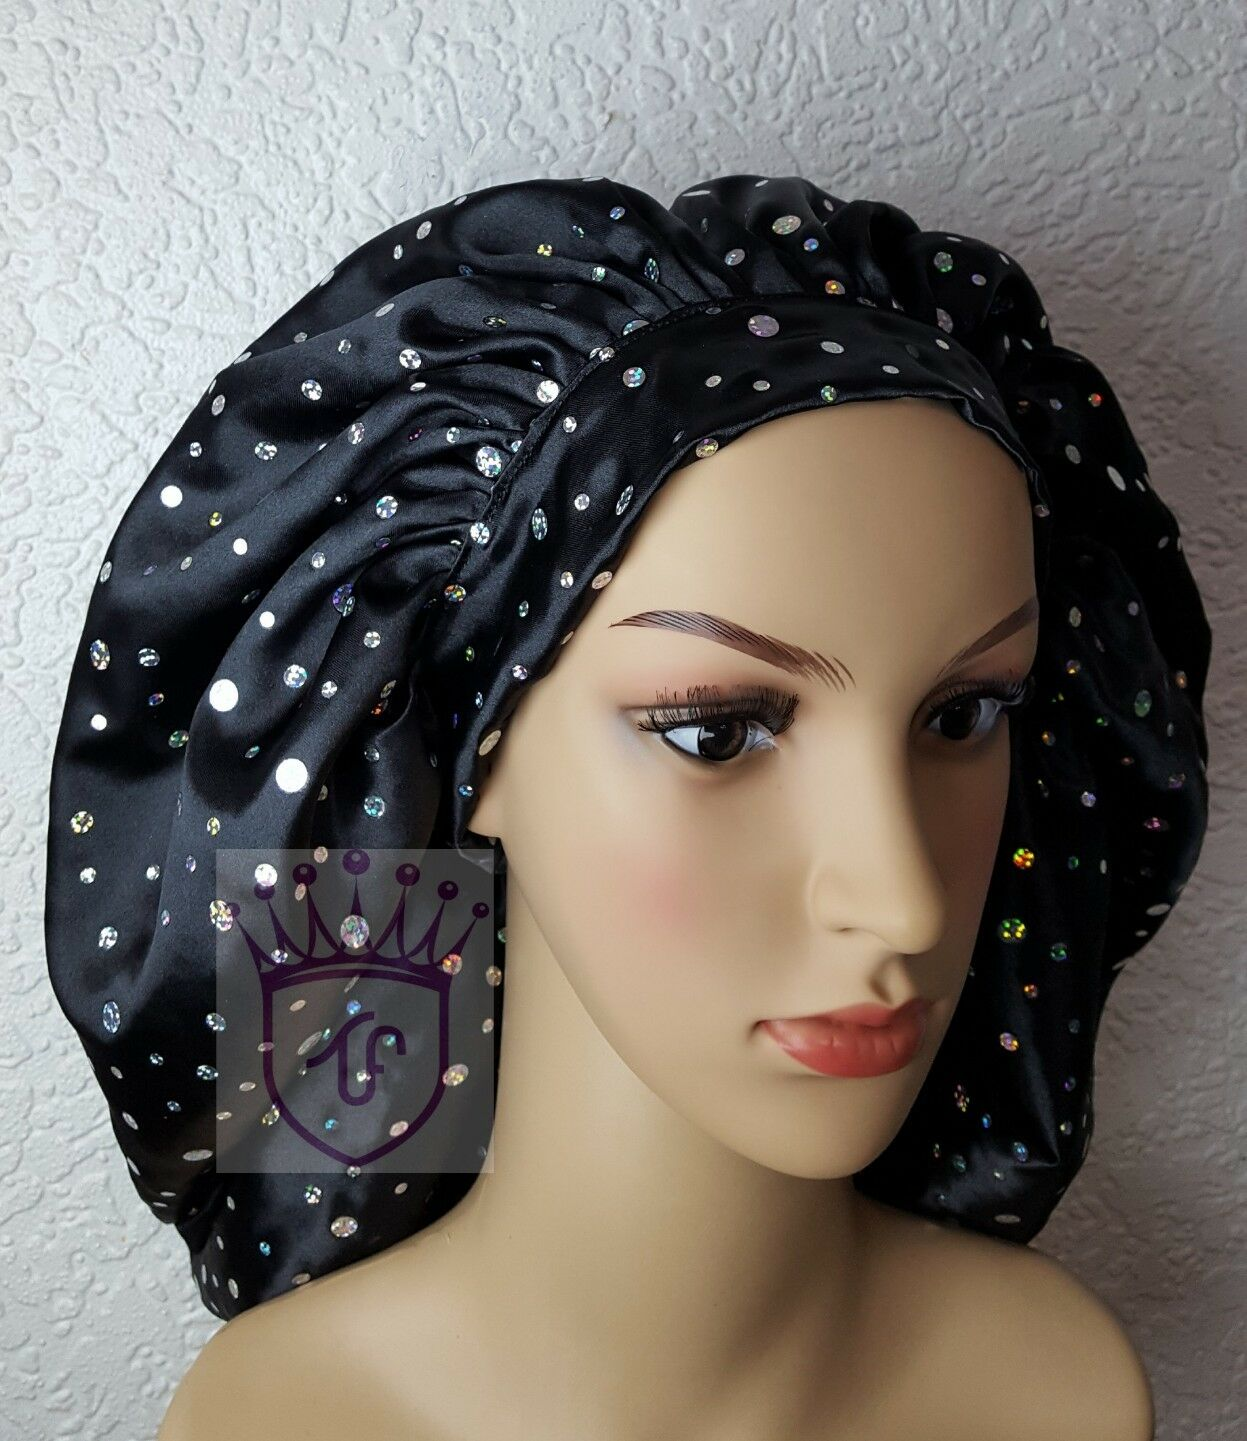 Sleeping satin bonnet for Afro/natural hair and all hair type with tie back